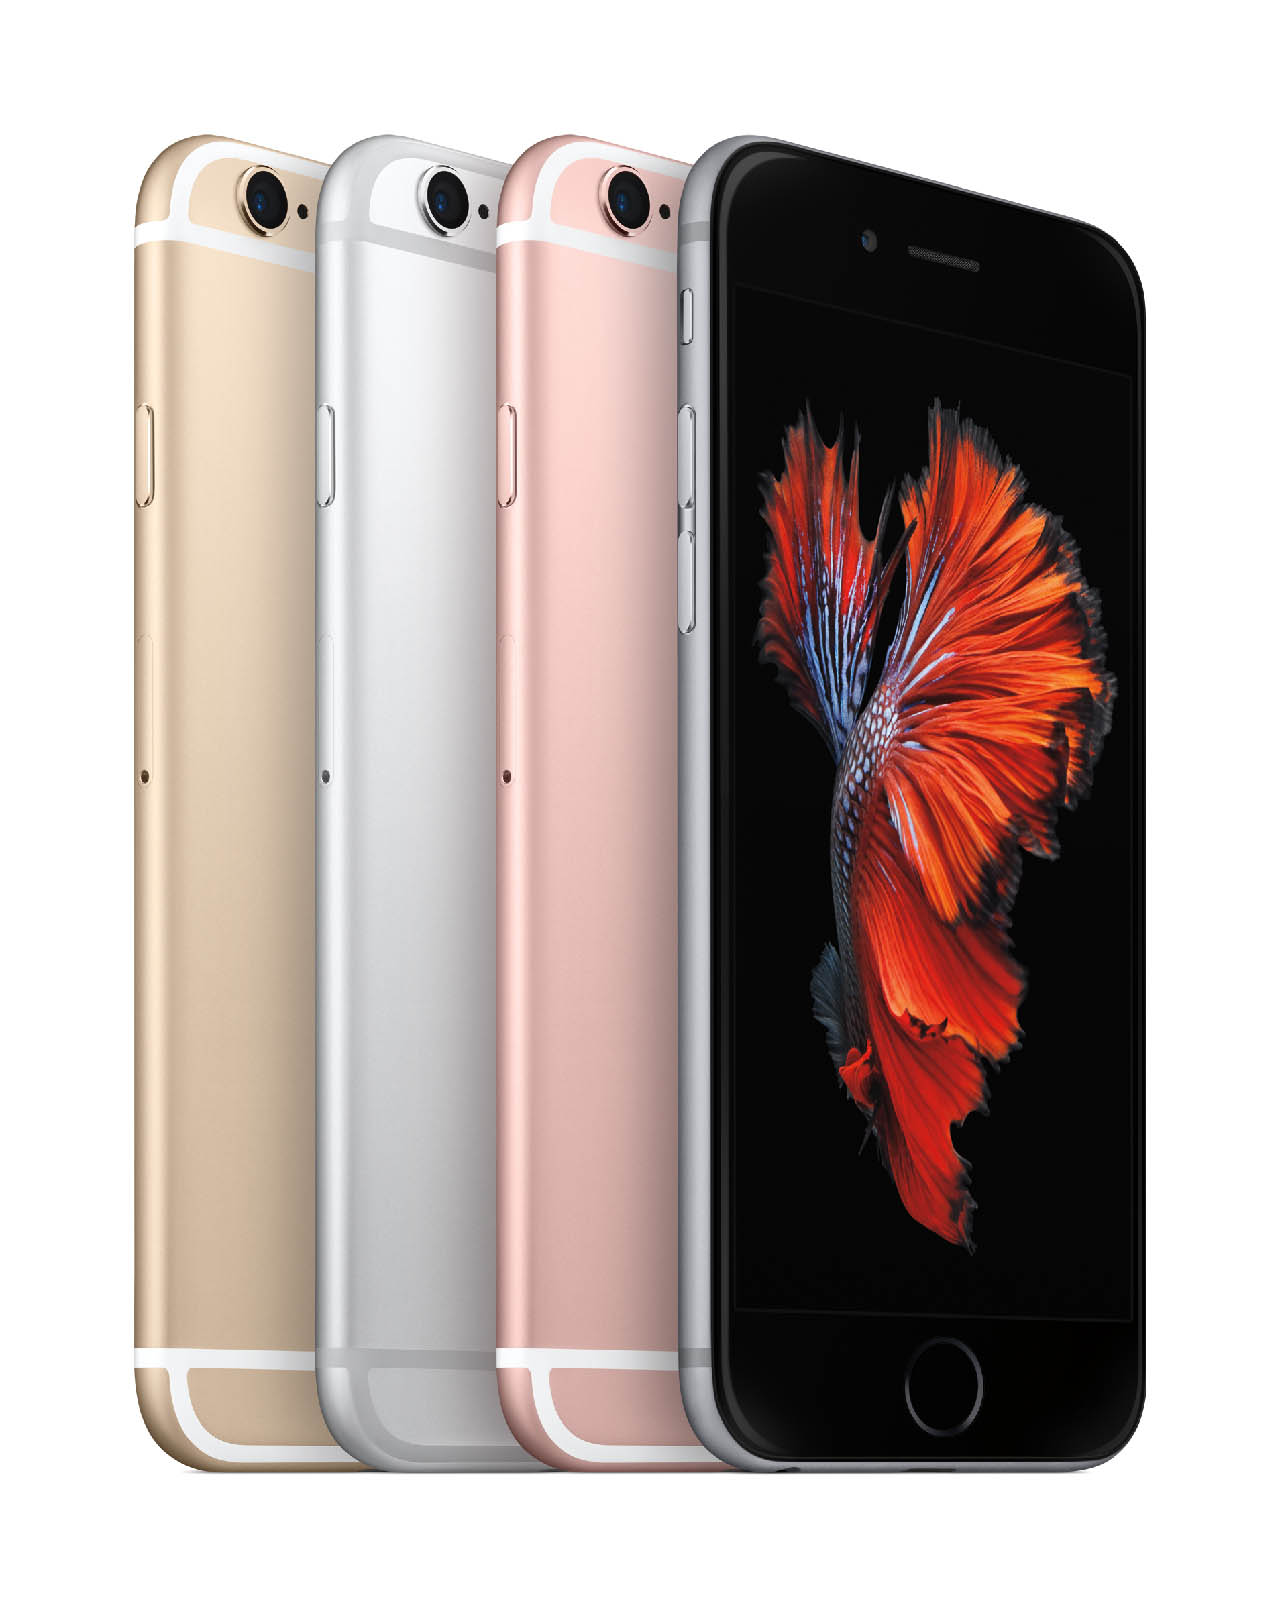 phones that are older but still top end like the iphone 6s are